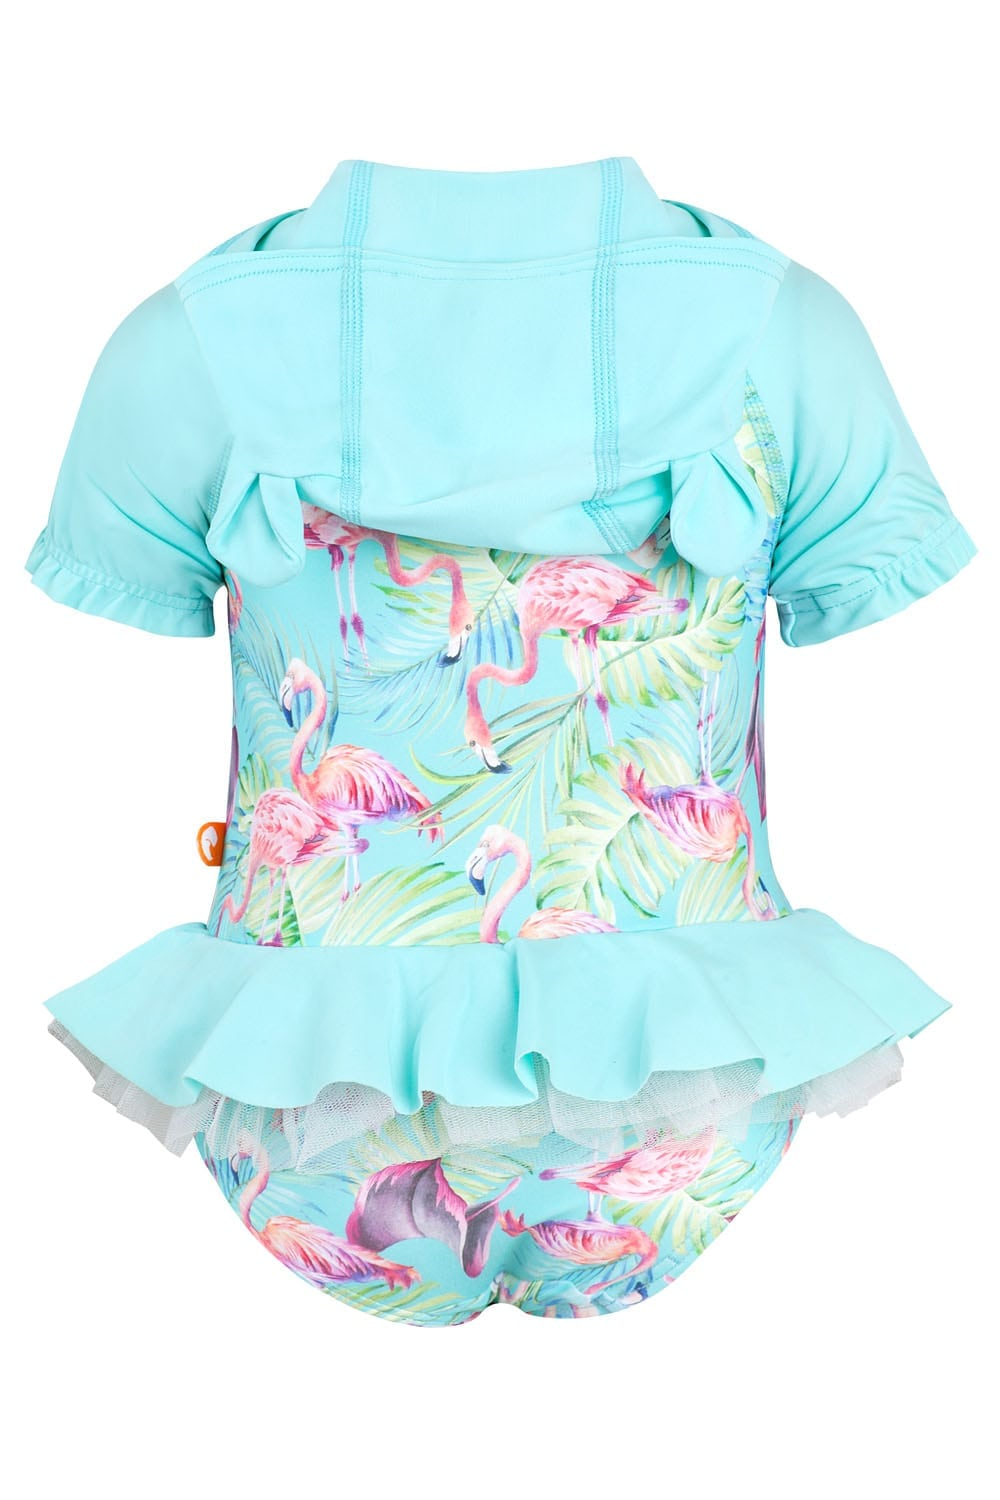 Flamingo Forest Baby Hooded One Piece - Chachi's Bay - kids rashies - kids swimwear - kids swim shoes - round towels - beach towels